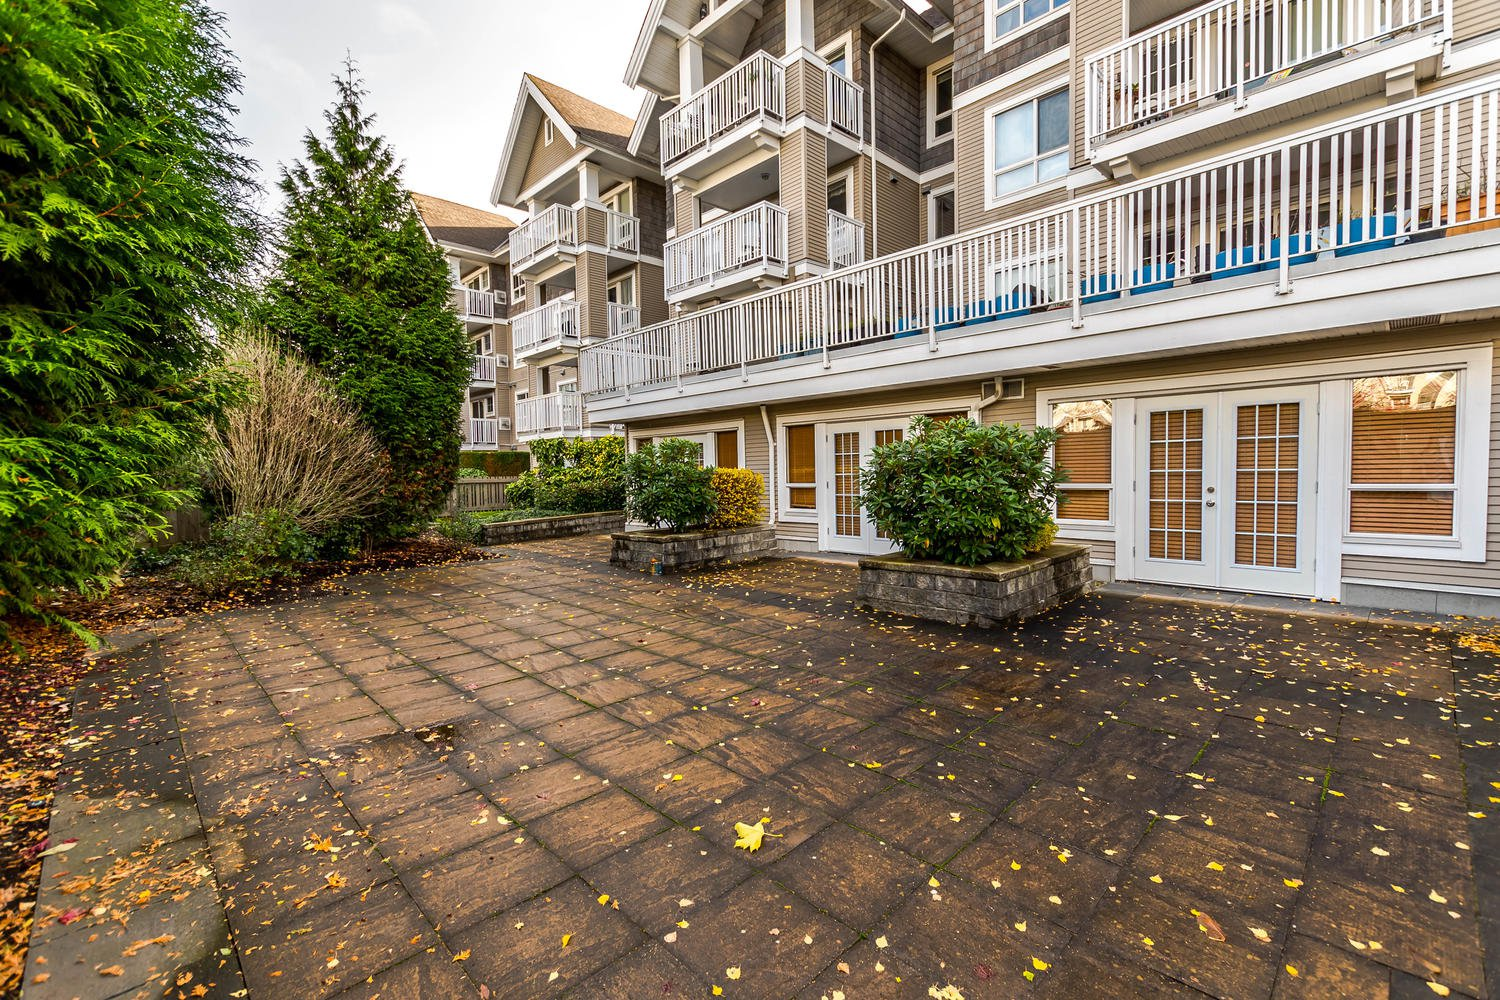 Photo 27: Photos: #408 20750 Duncan Way: Langley City Condo for sale (Langley)  : MLS®# R2221641